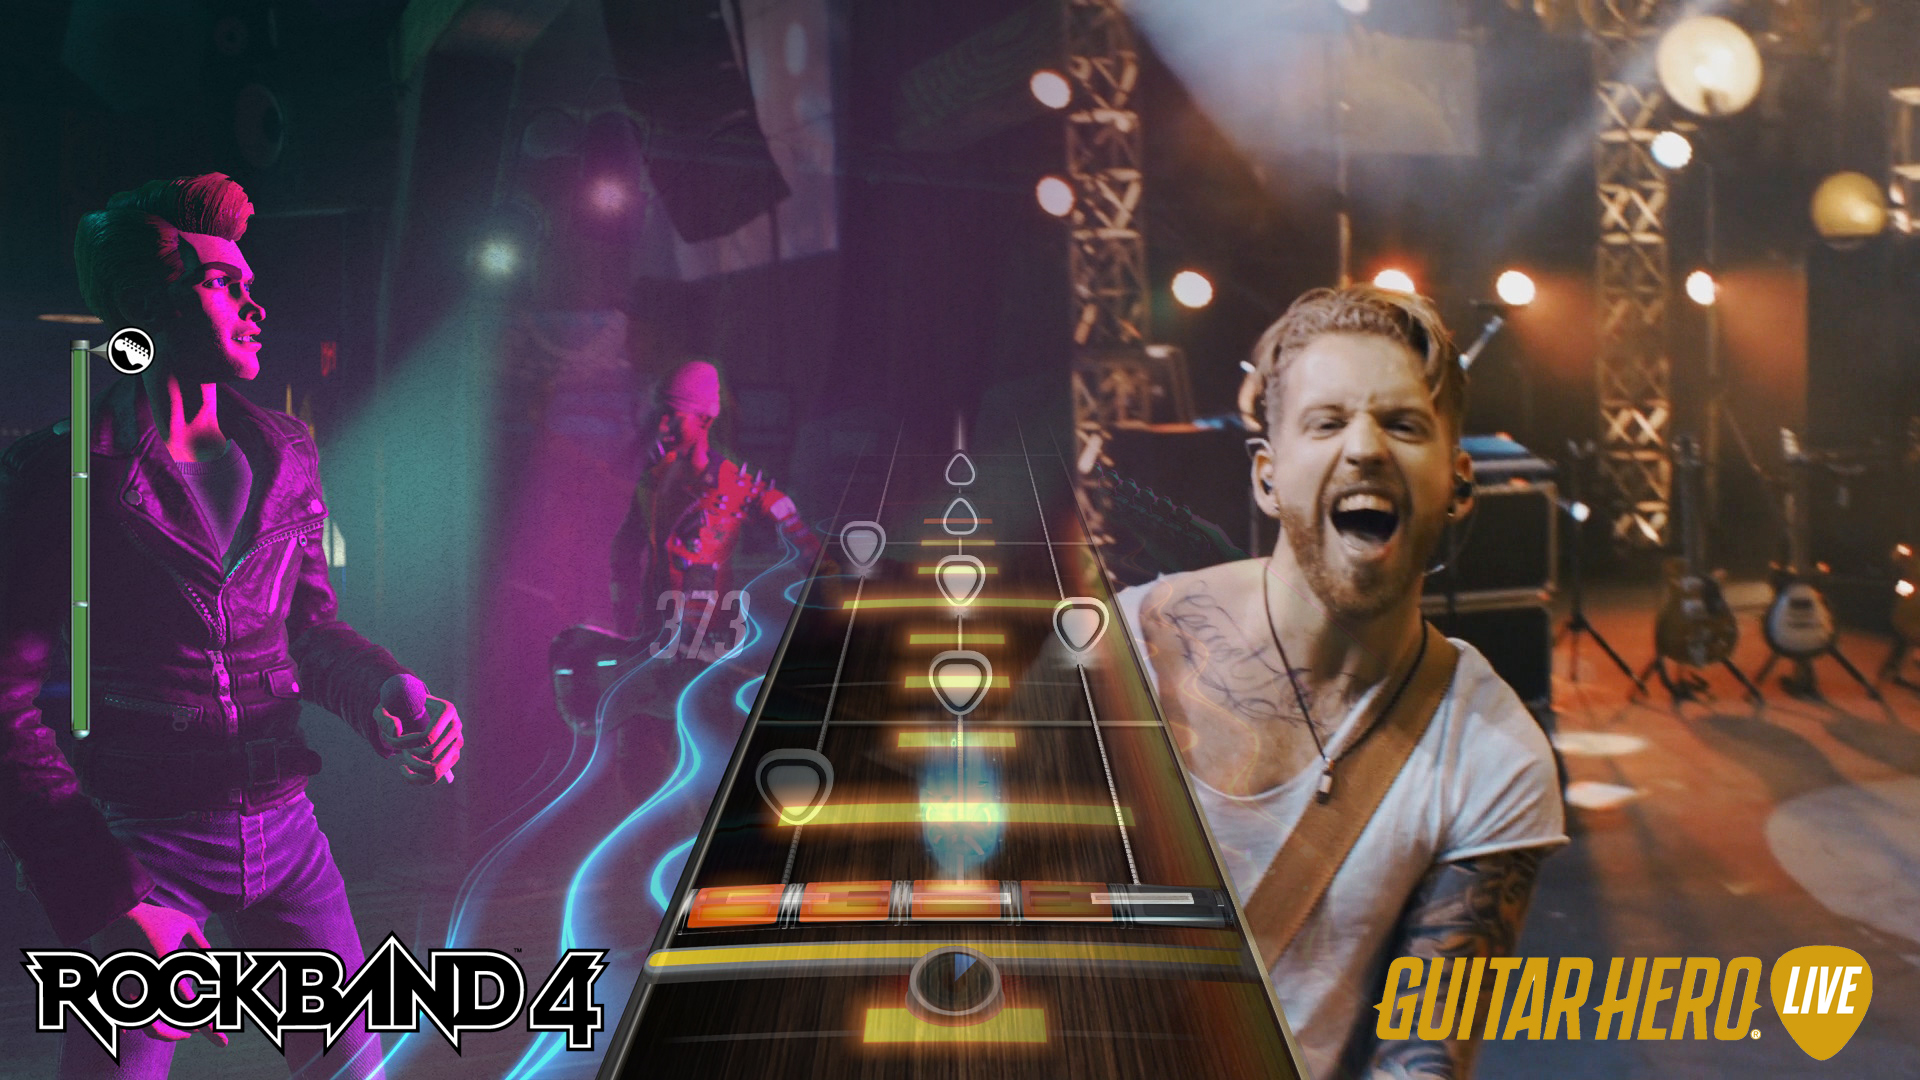 Battle of the Bands: Guitar Hero Live vs Rock Band 4 | TechRadar